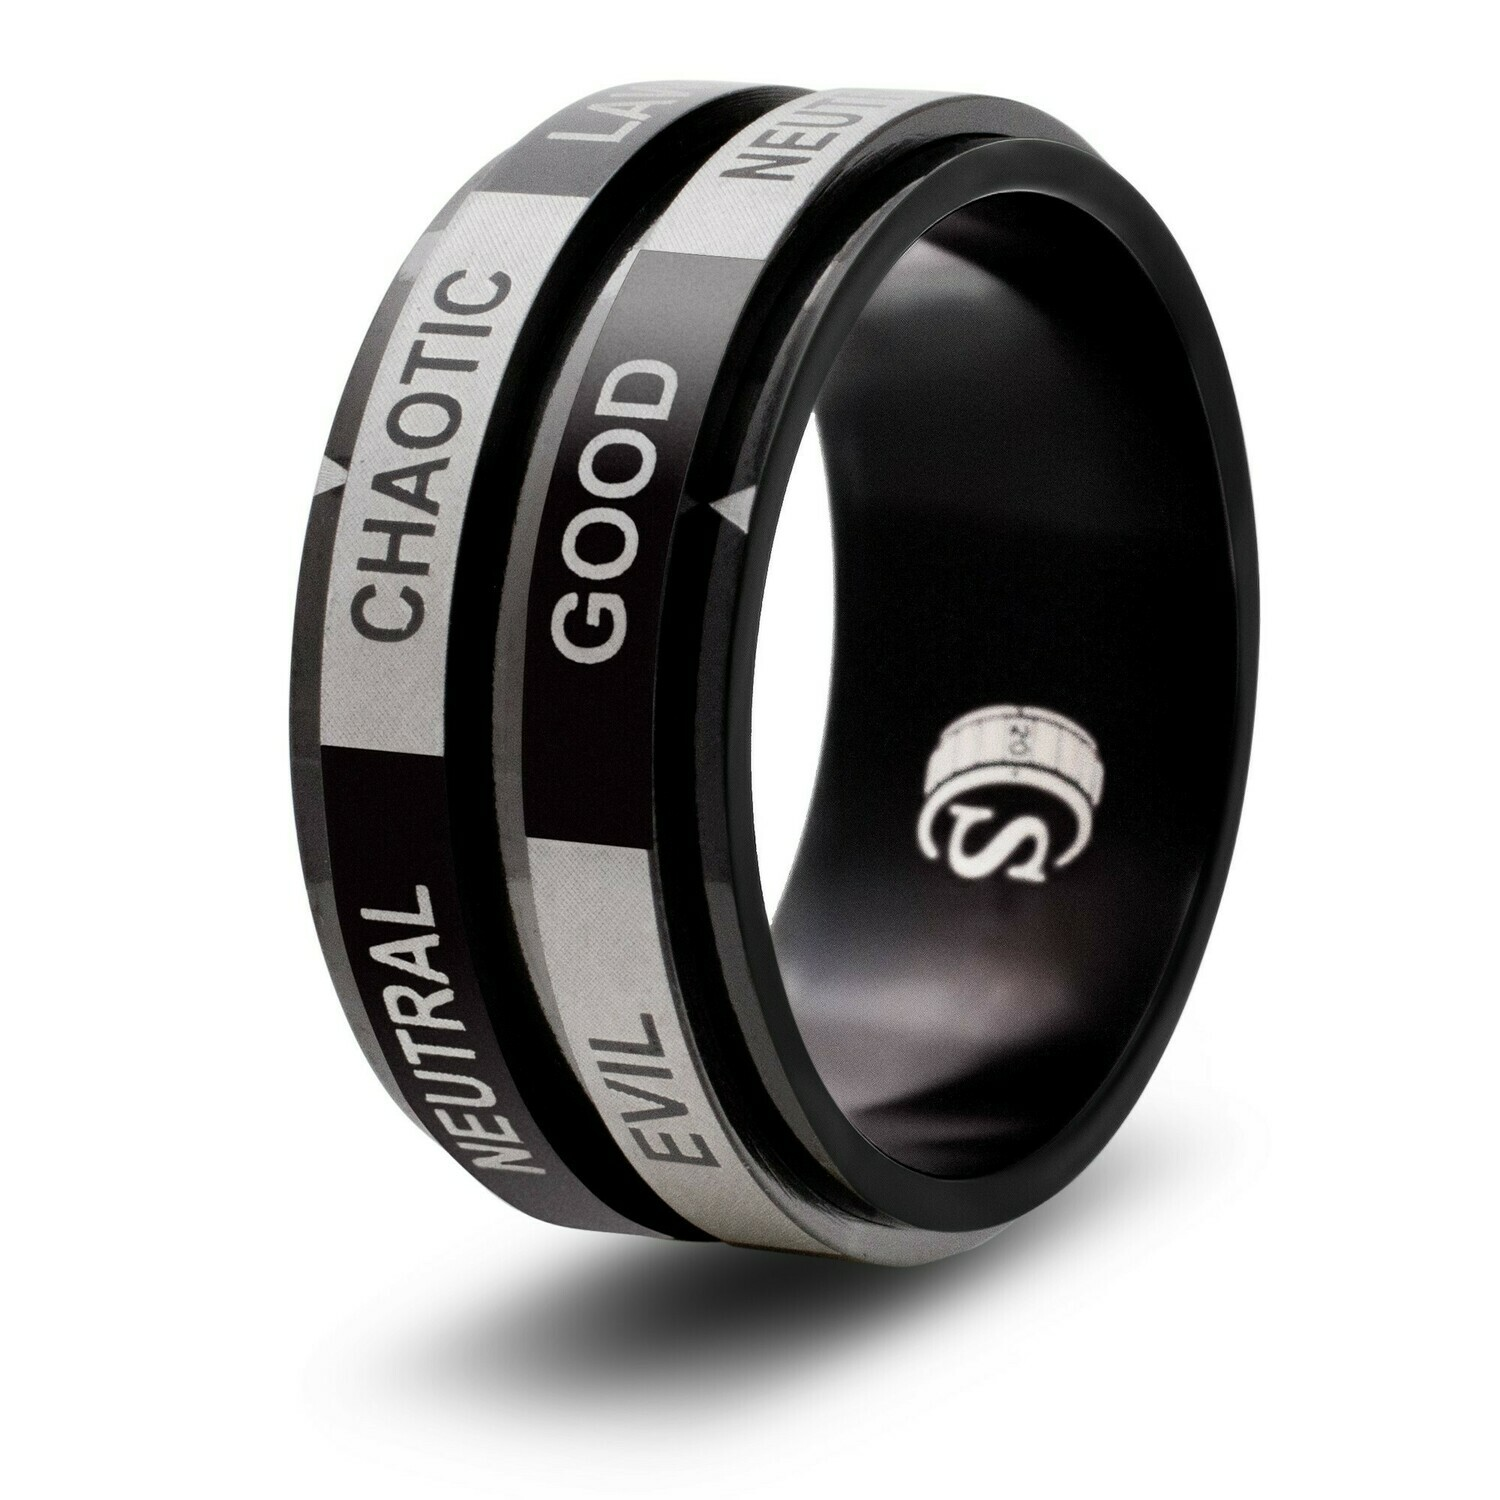 Alignment Dice Random Number Spinner Ring Black Tabletop RPG Gaming Roleplay Games